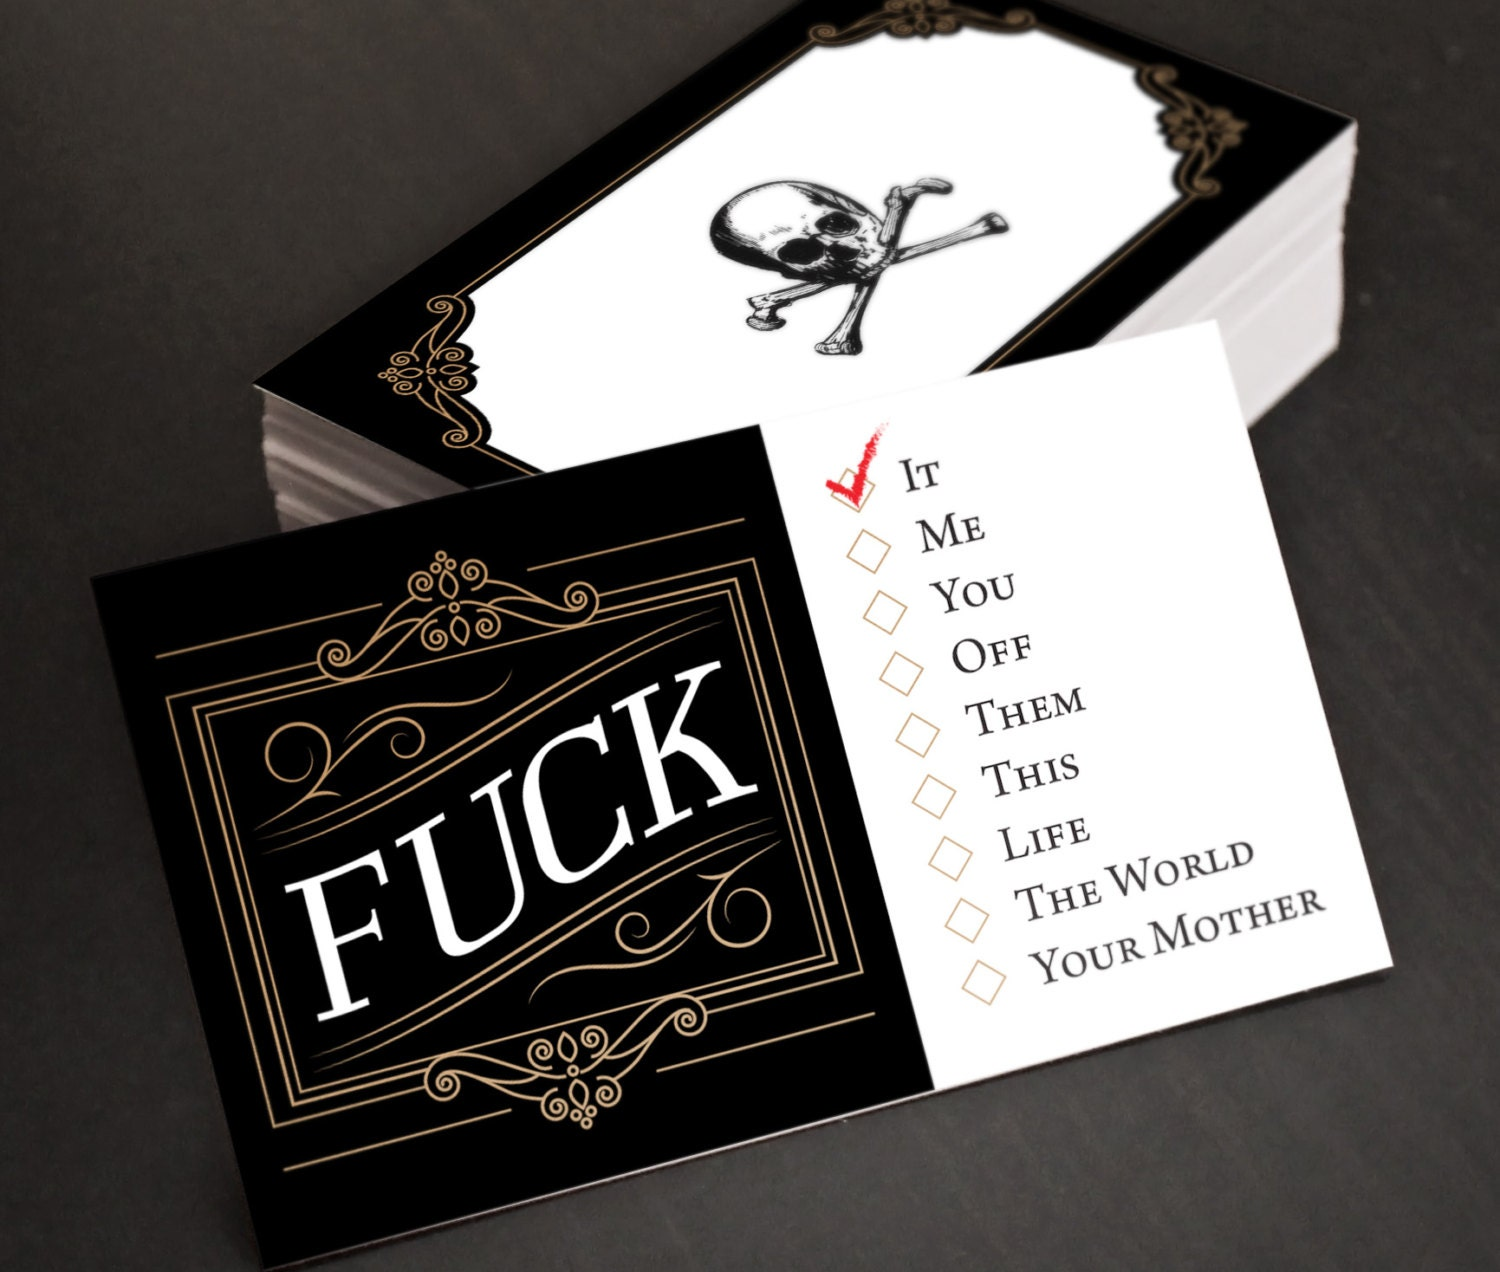 Funny business cards boatremyeaton funny business cards friedricerecipe Image collections